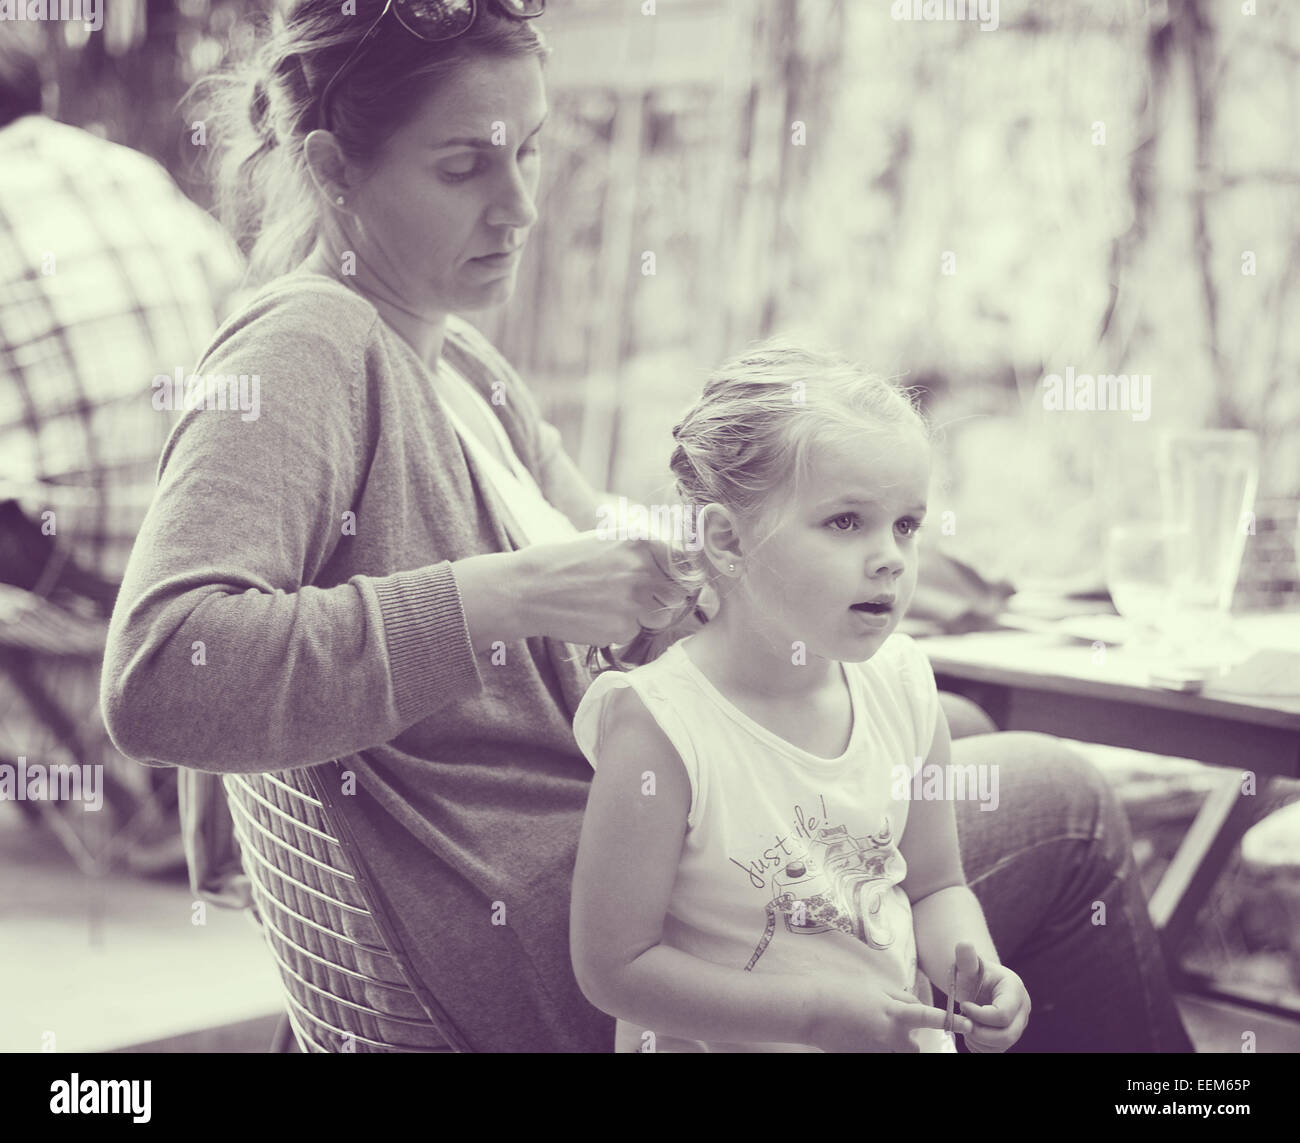 Mother braiding daughter's hair - Stock Image